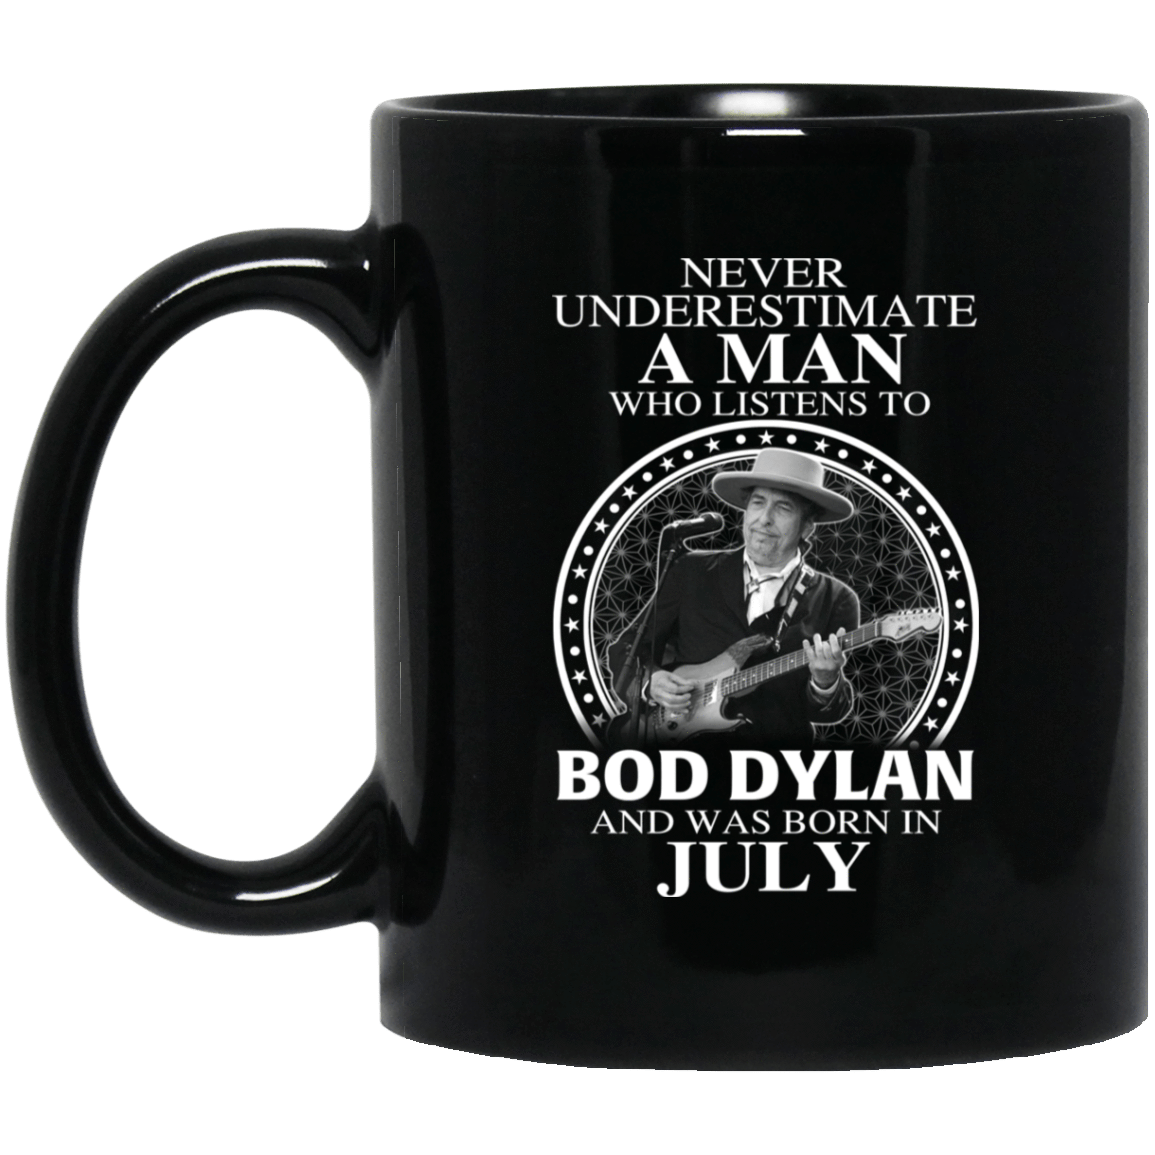 A Man Who Listens To Bob Dylan And Was Born In July Mug 1065-10181-76153605-49307 - Tee Ript